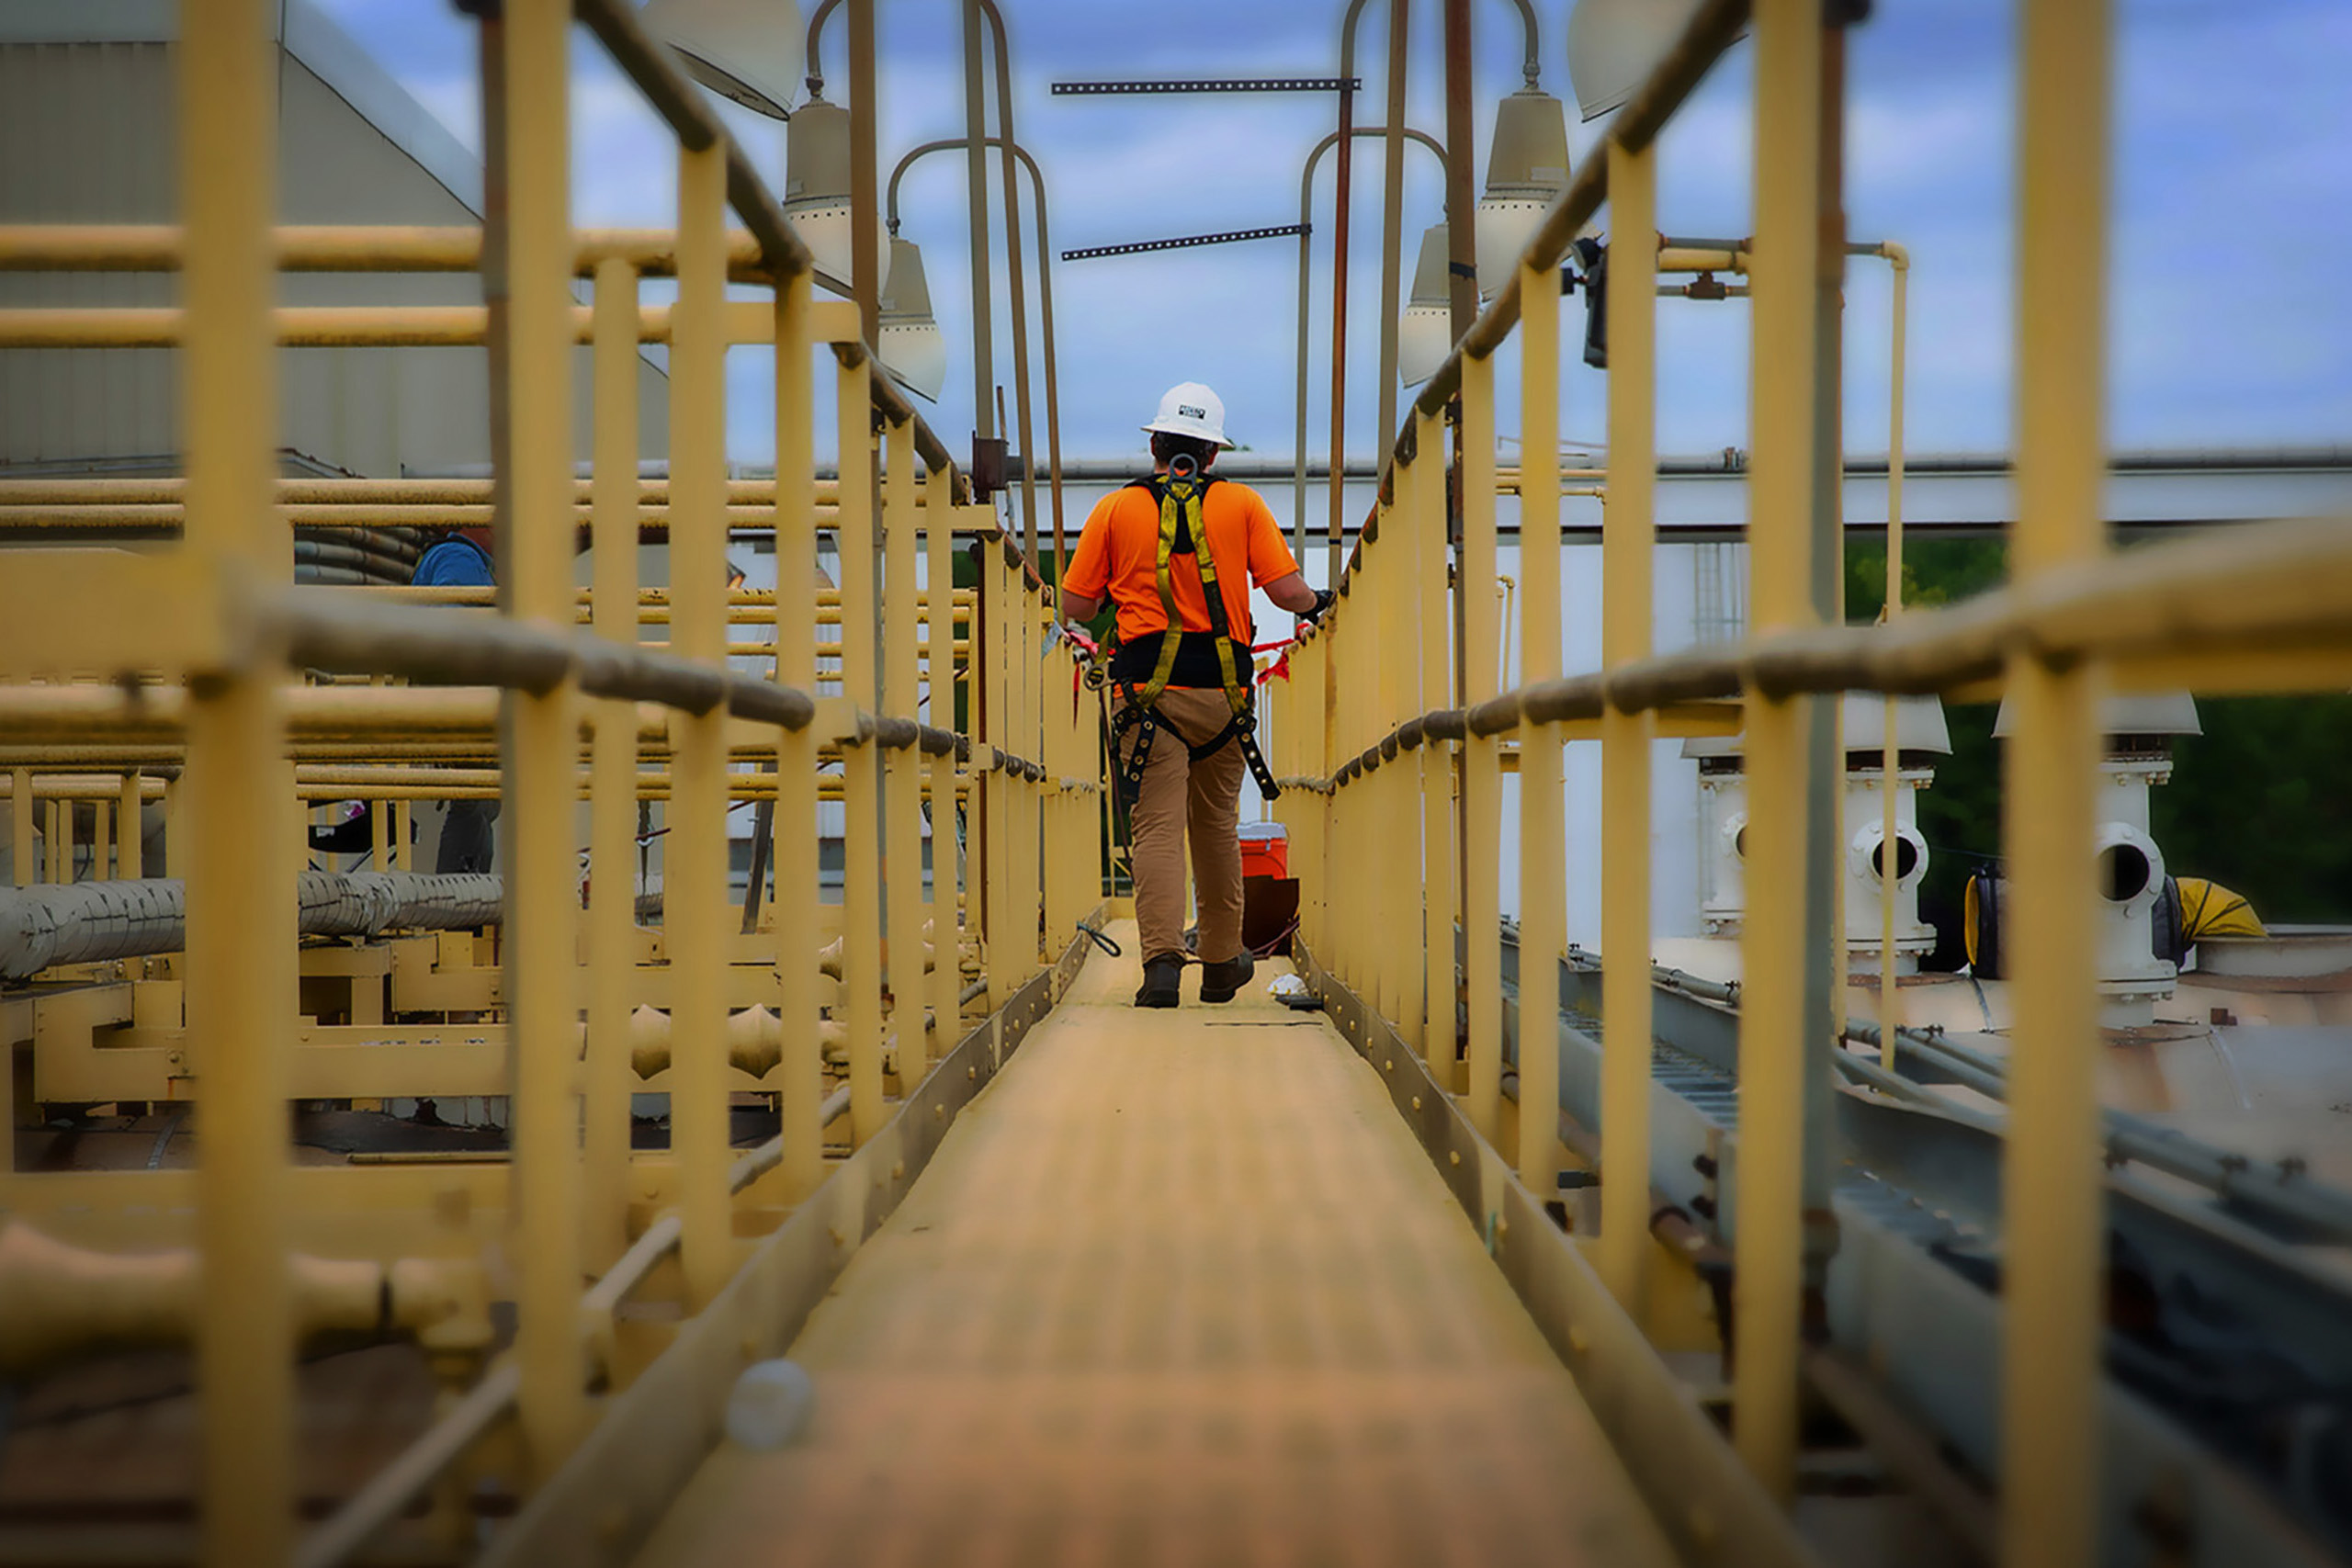 industrial worker walking away down a long metal walkway